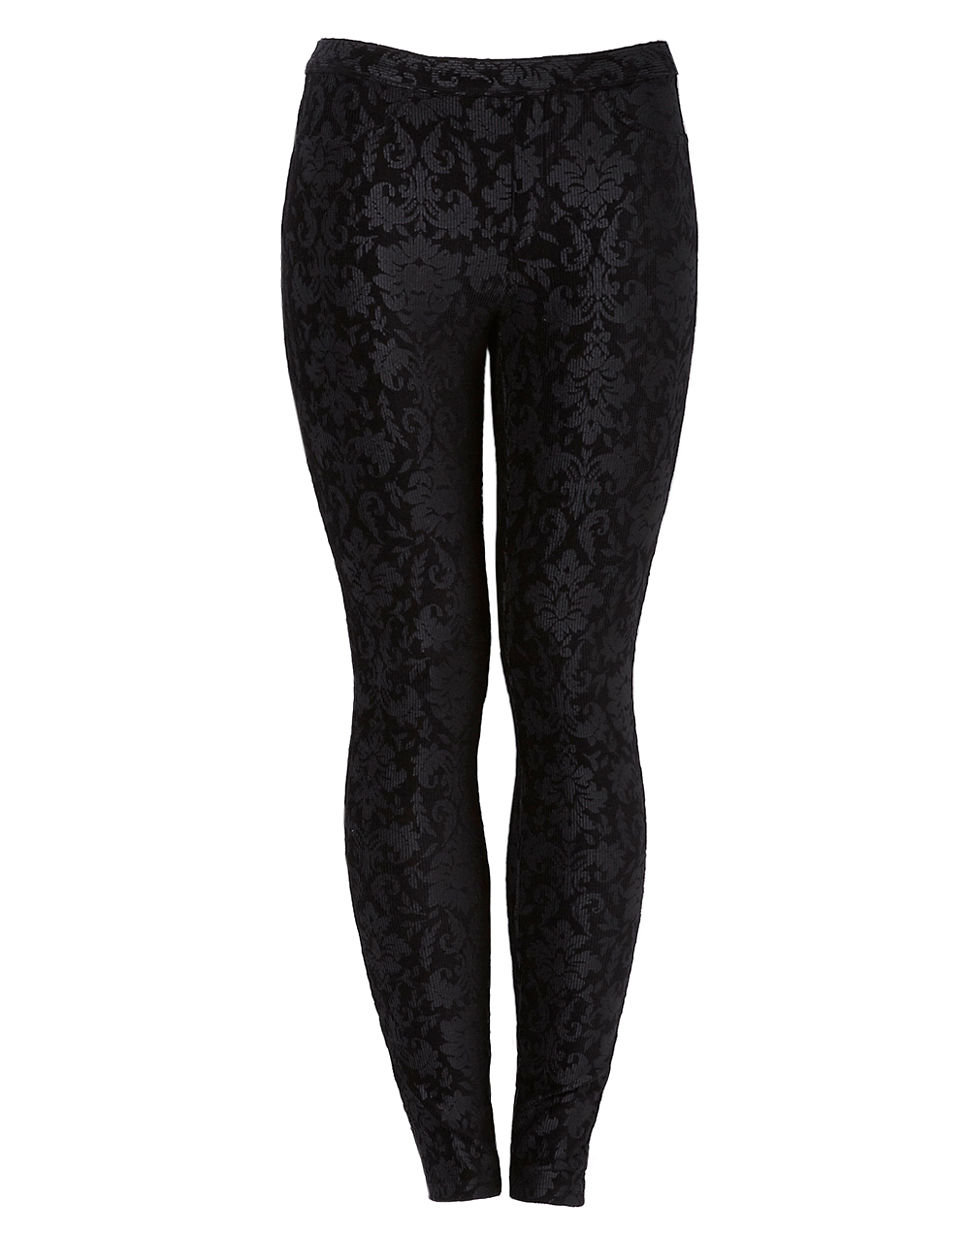 Hue Tapestry Corduroy Legging black Small